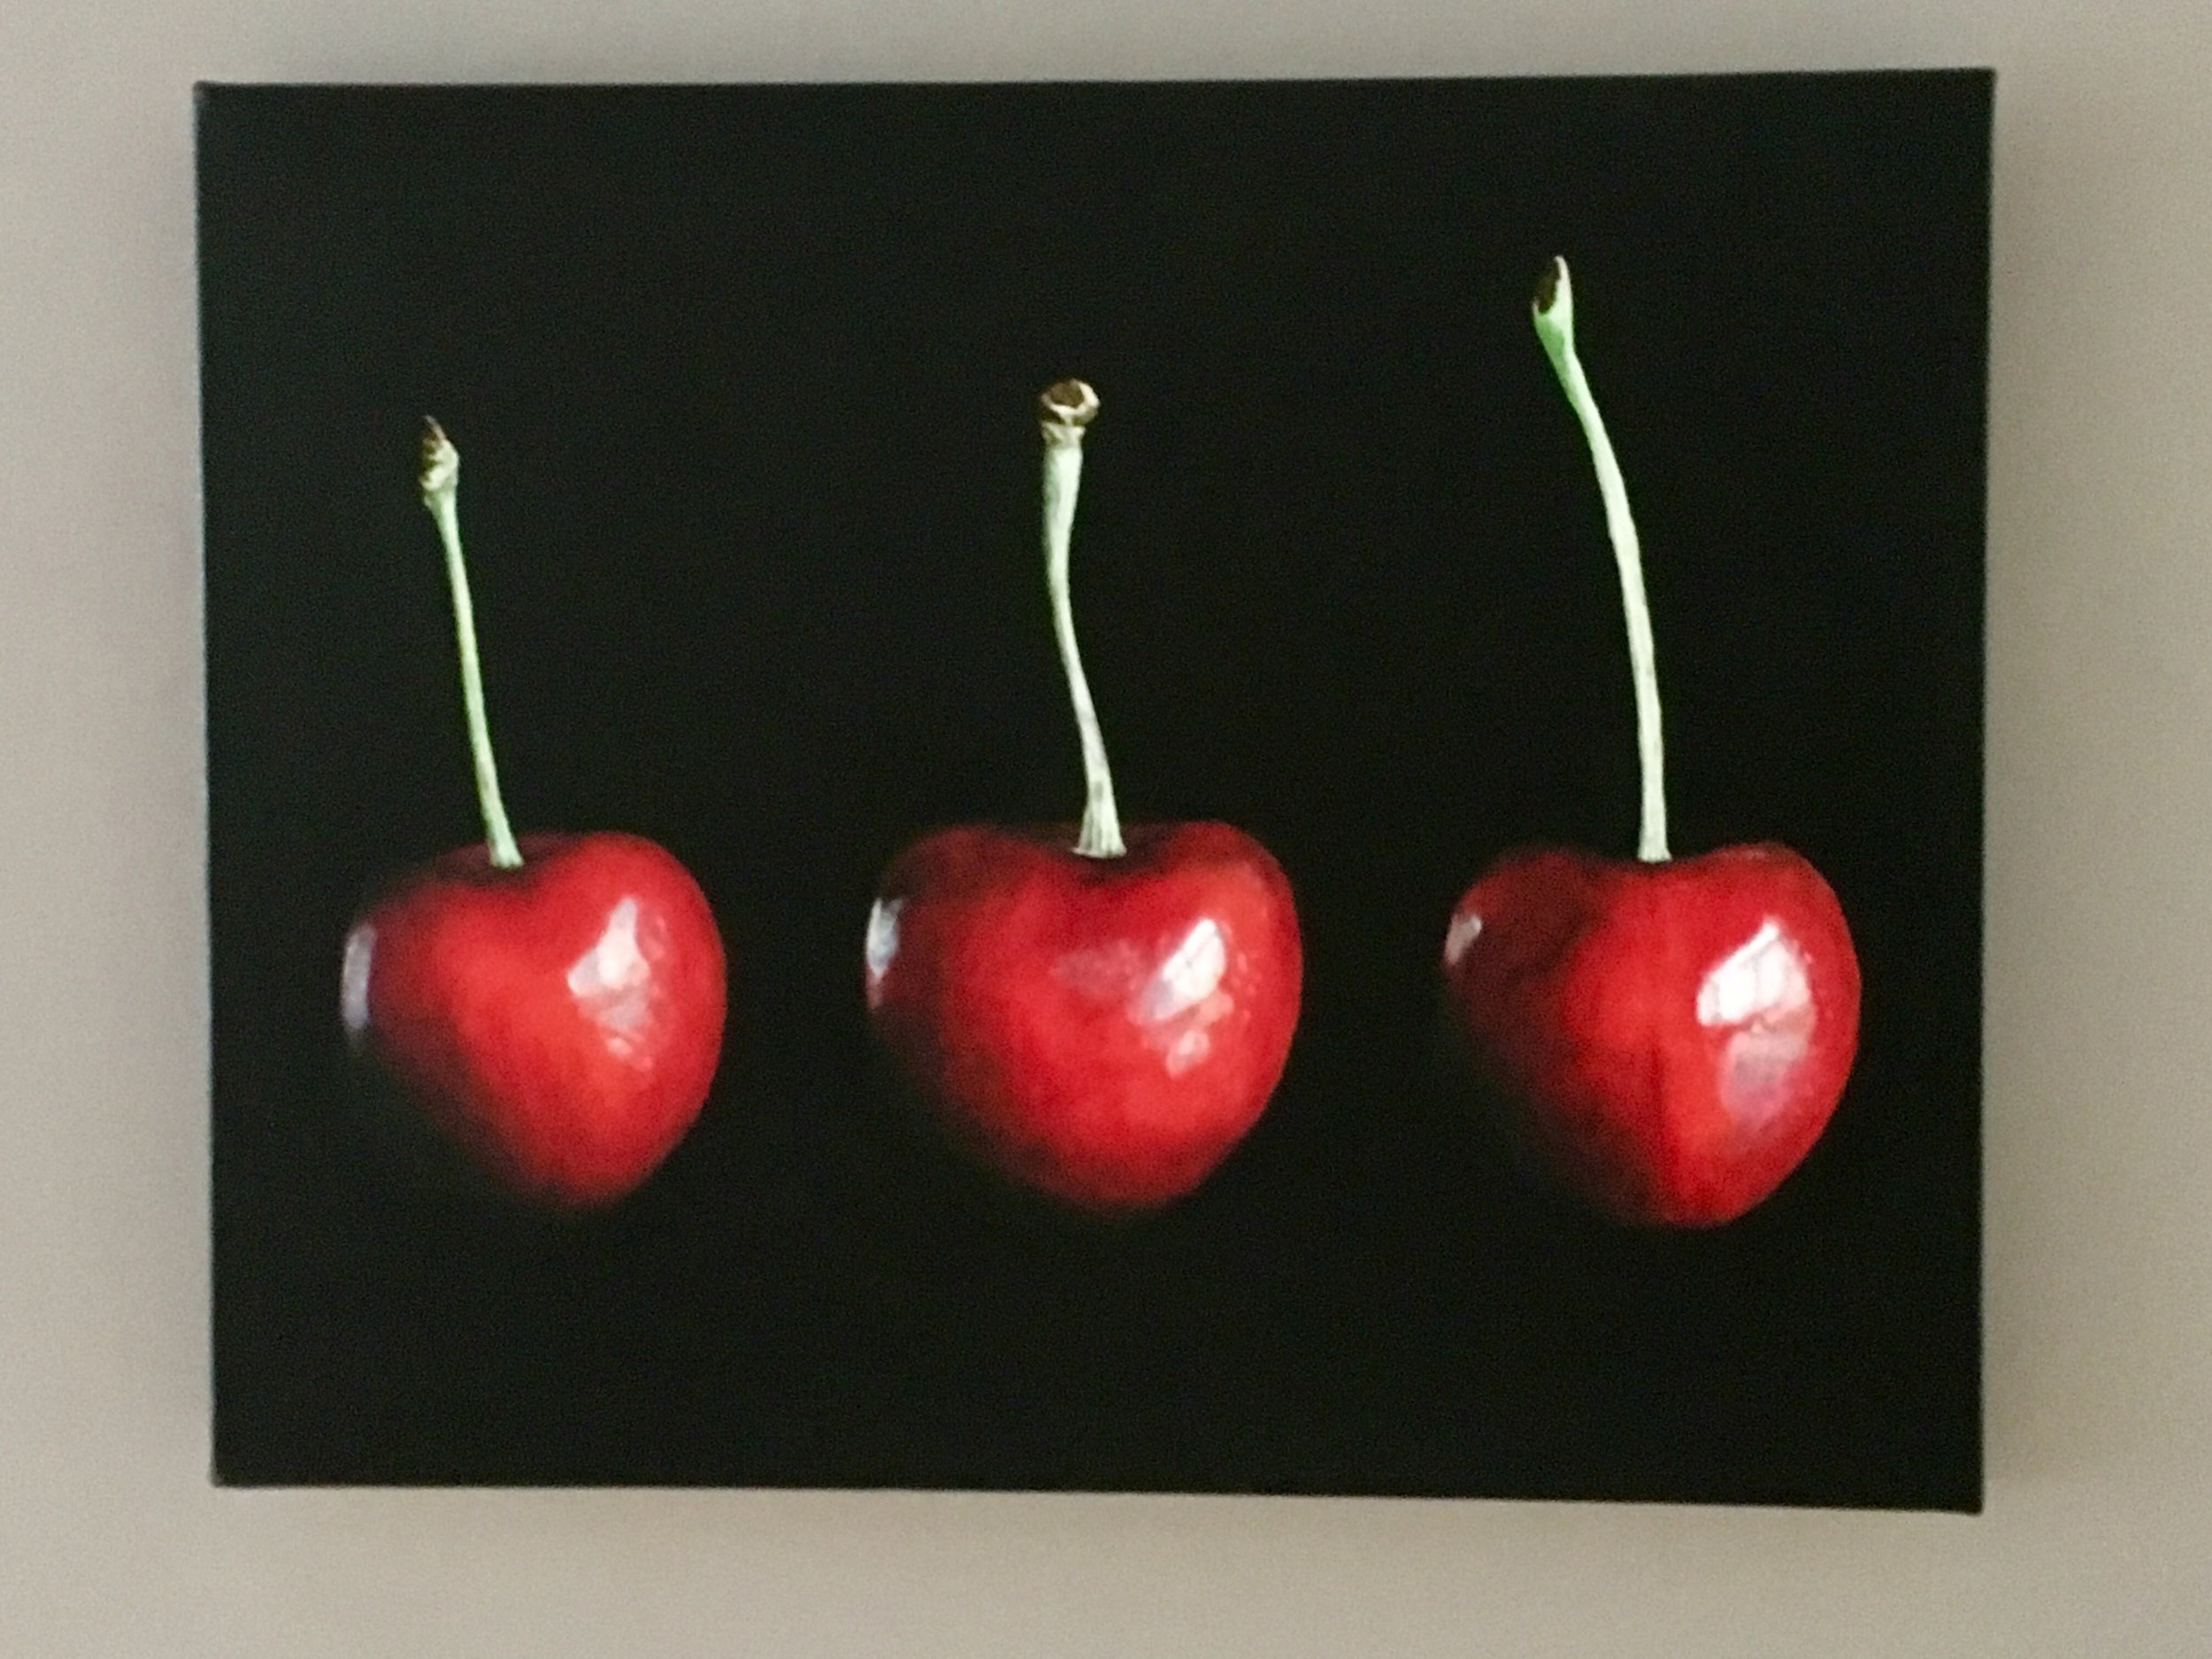 Three Cherries (Black)